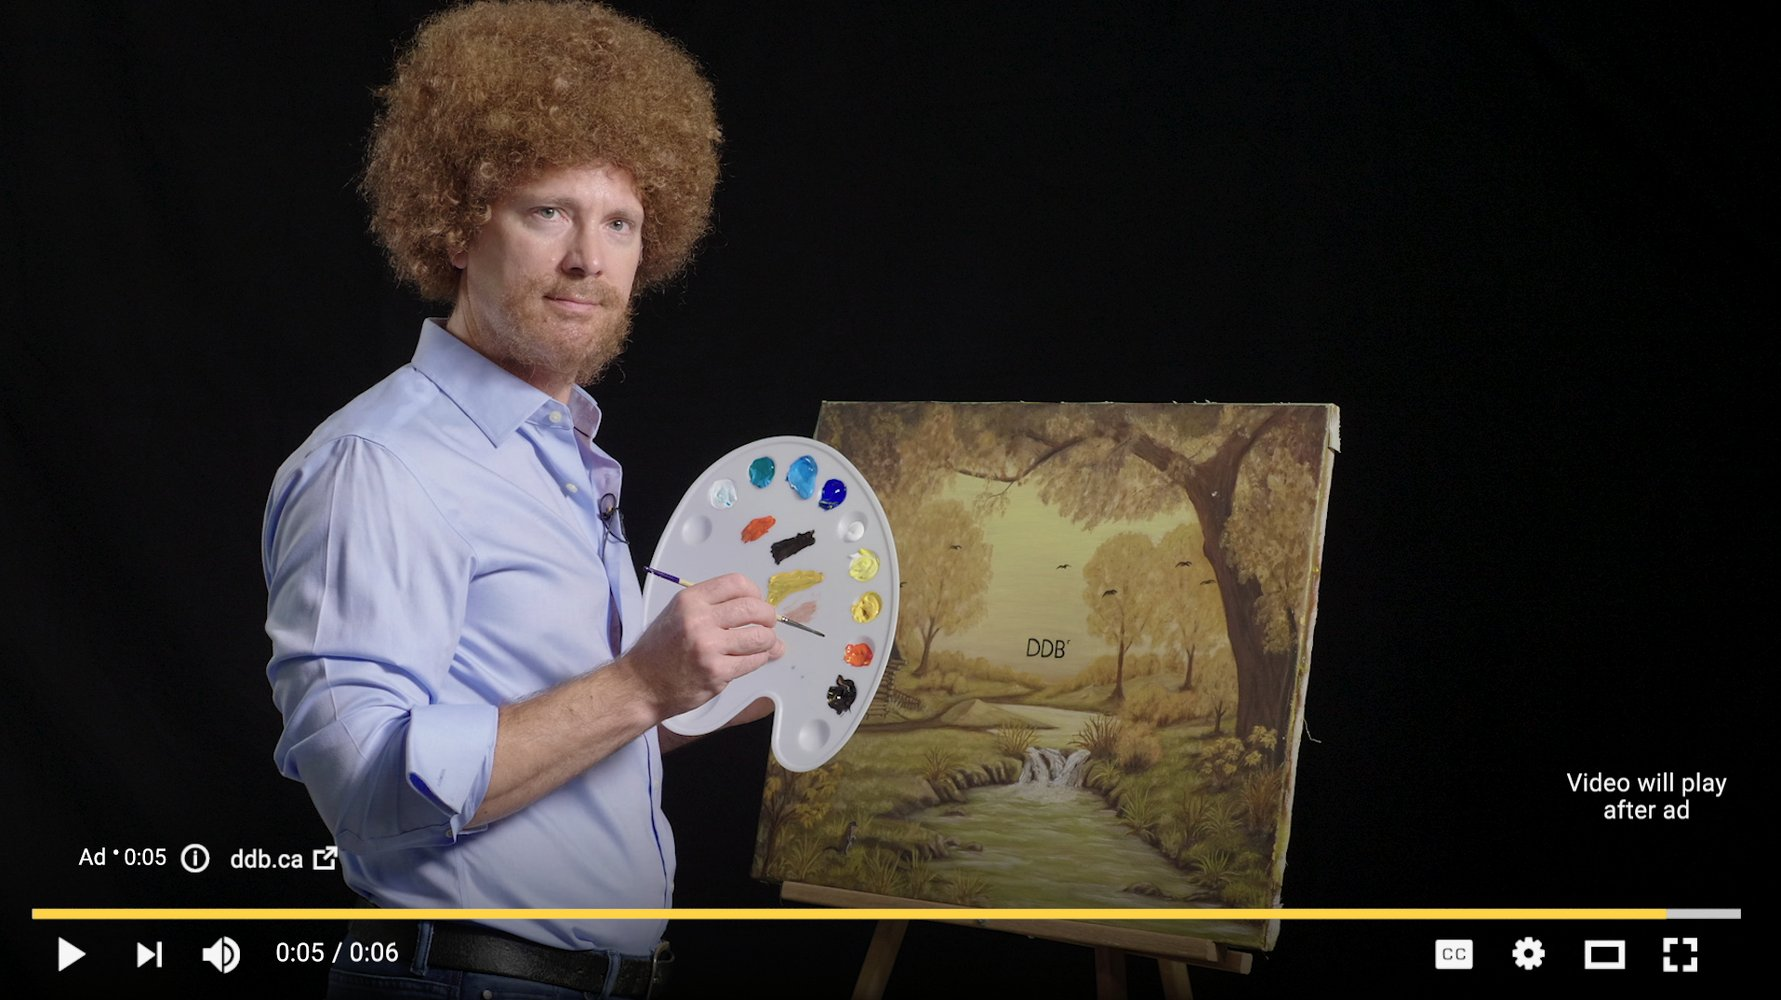 DDB Being their most Bob Ross.